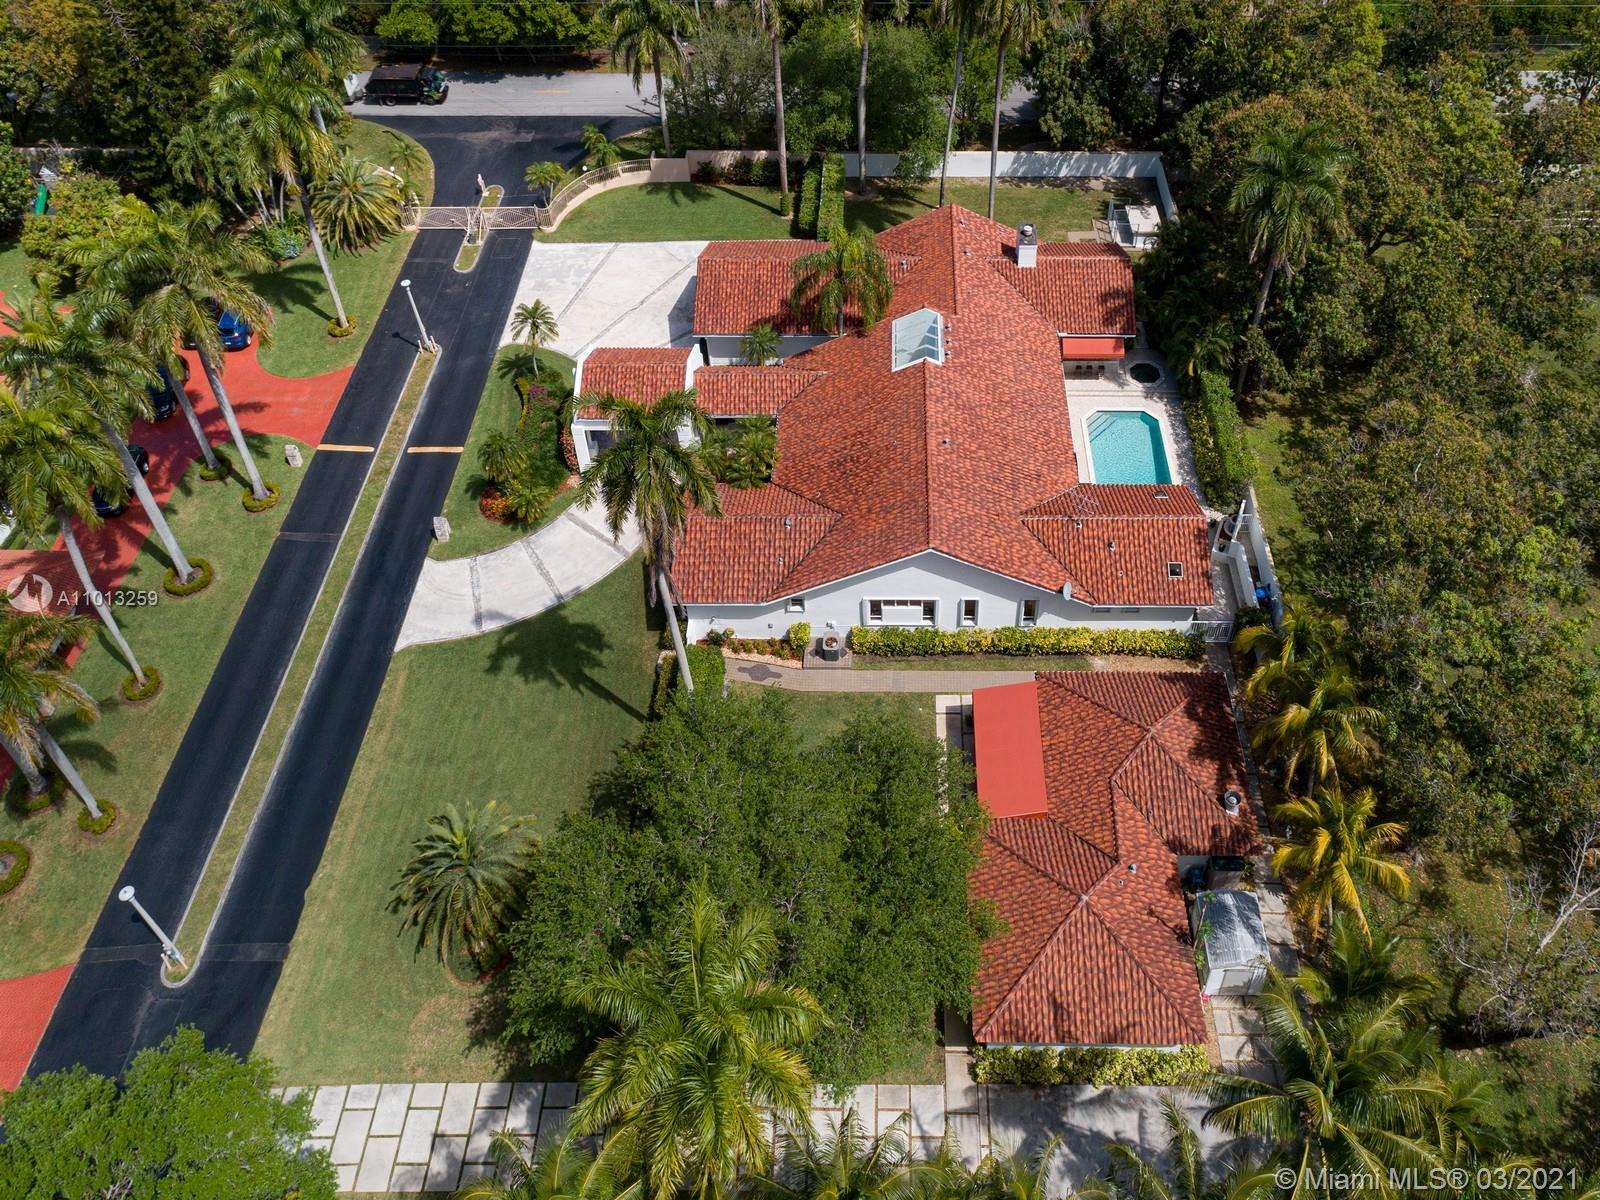 Magnificent private oasis located in a gated community just off Sunset & South Miami area. This gorgeous home offers a detached 1bedrm/1bathrm guest house, main house features 4 bedrms & 4/1 bathrms with large living areas for entertaining family & friends, including a formal living room with views of the formal dining room & sitting area. Gourmet chef's kitchen with cozy breakfast area booth with bow windows. Enjoy an expansive family room with fireplace, & wet bar. Master Suite offers large space with walk in closets, spa like bath, jacuzzi tub, double vanities, & separate shower. Discover an outdoor retreat with large pool & spa, covered terrace & summer kitchen. Additional Features: guest house includes a sauna room private entrance & driveway w/ ample parking, 2 Car gar & laundry rm.